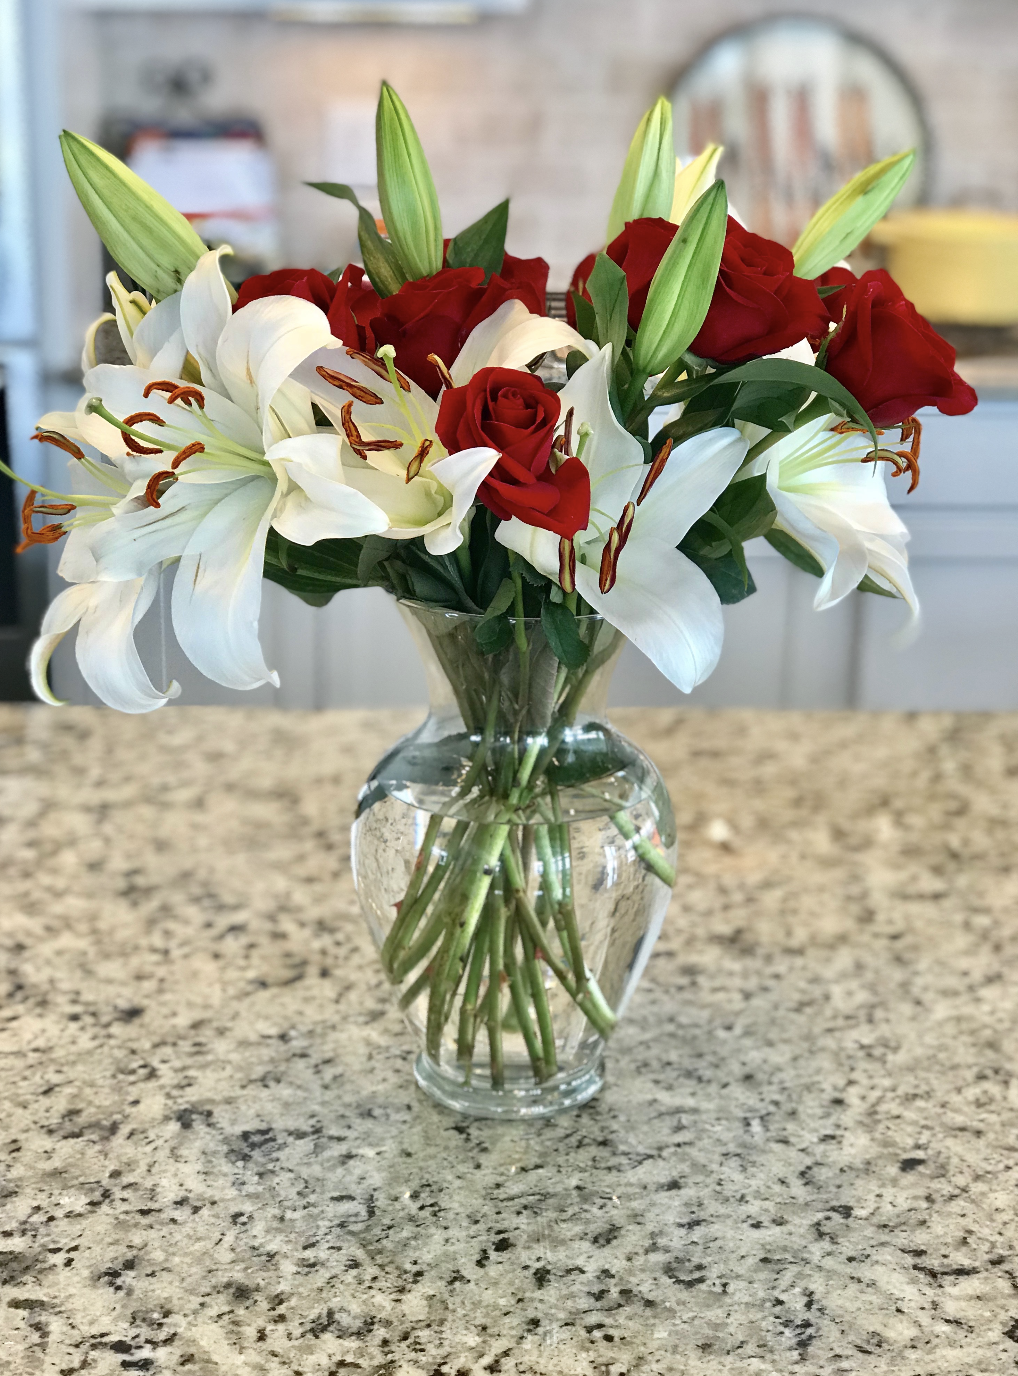 Amazon Flower Delivery Bouquets Under 30 Shipped Flower Delivery Amazon Flowers Flowers